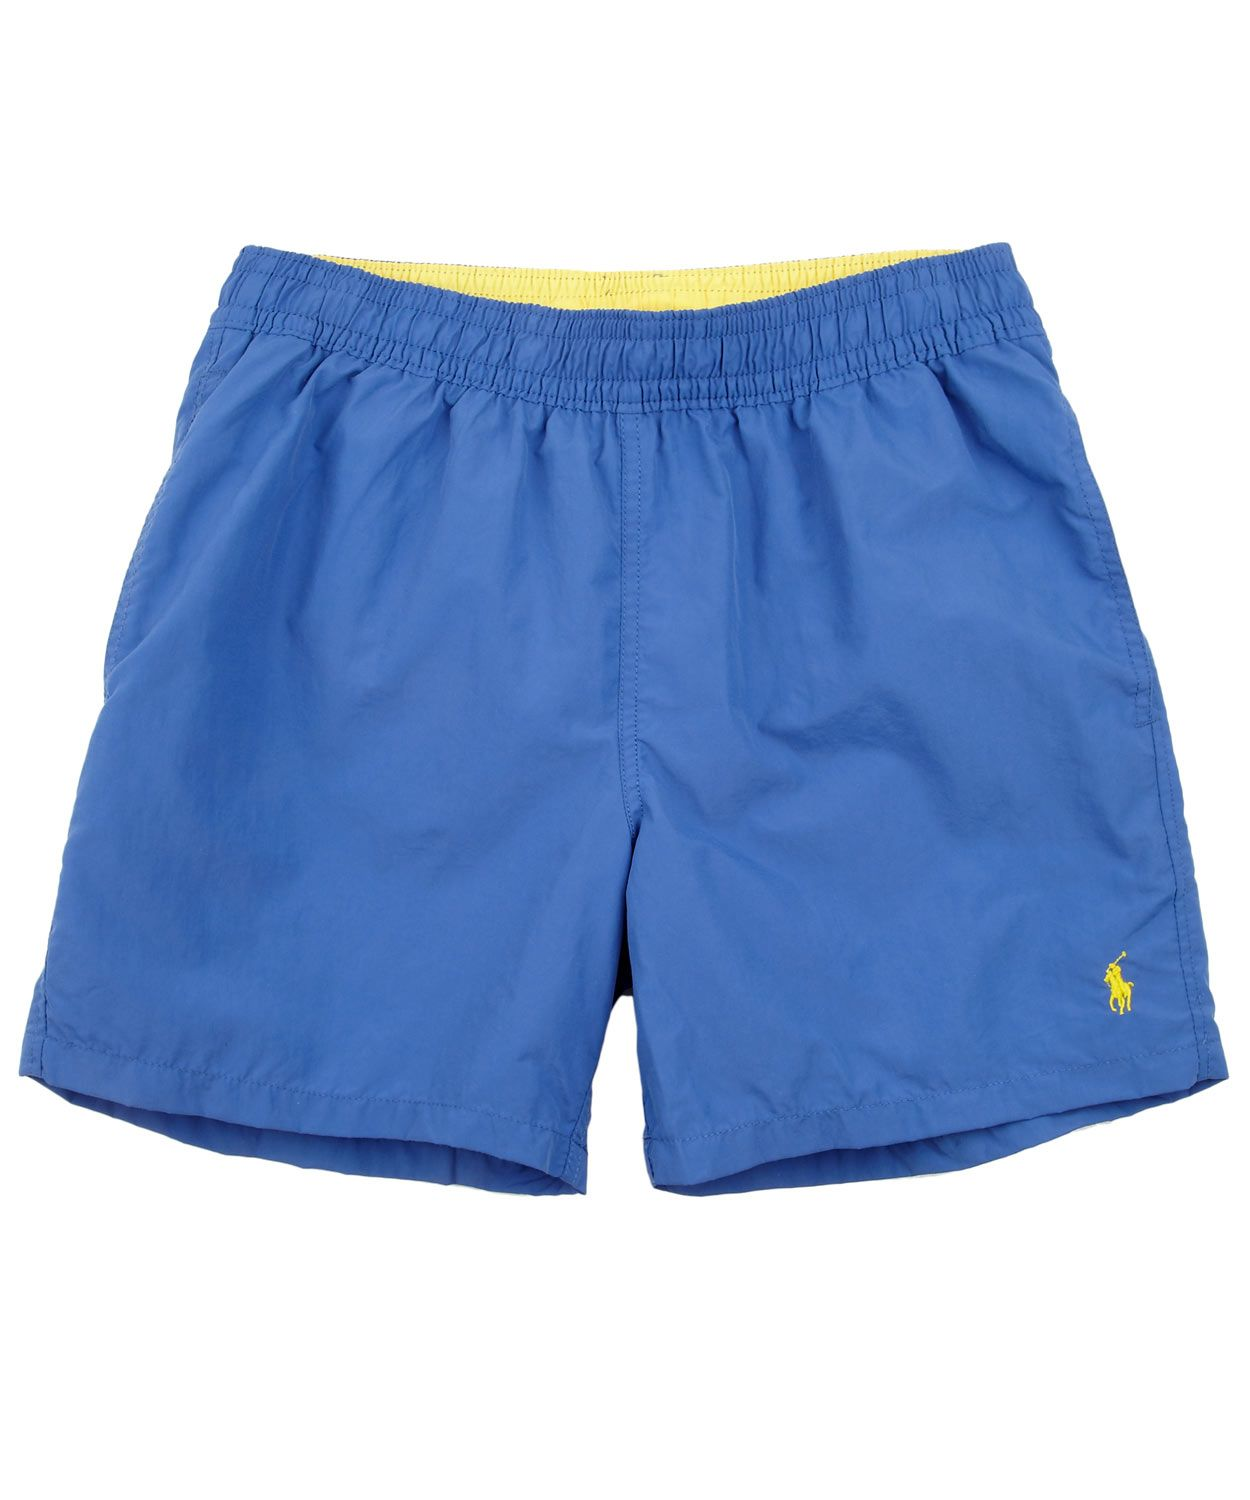 3899fe46fd2c5 RALPH LAUREN SWIM SHORTS | Items | Ralph lauren swim shorts, Swim ...